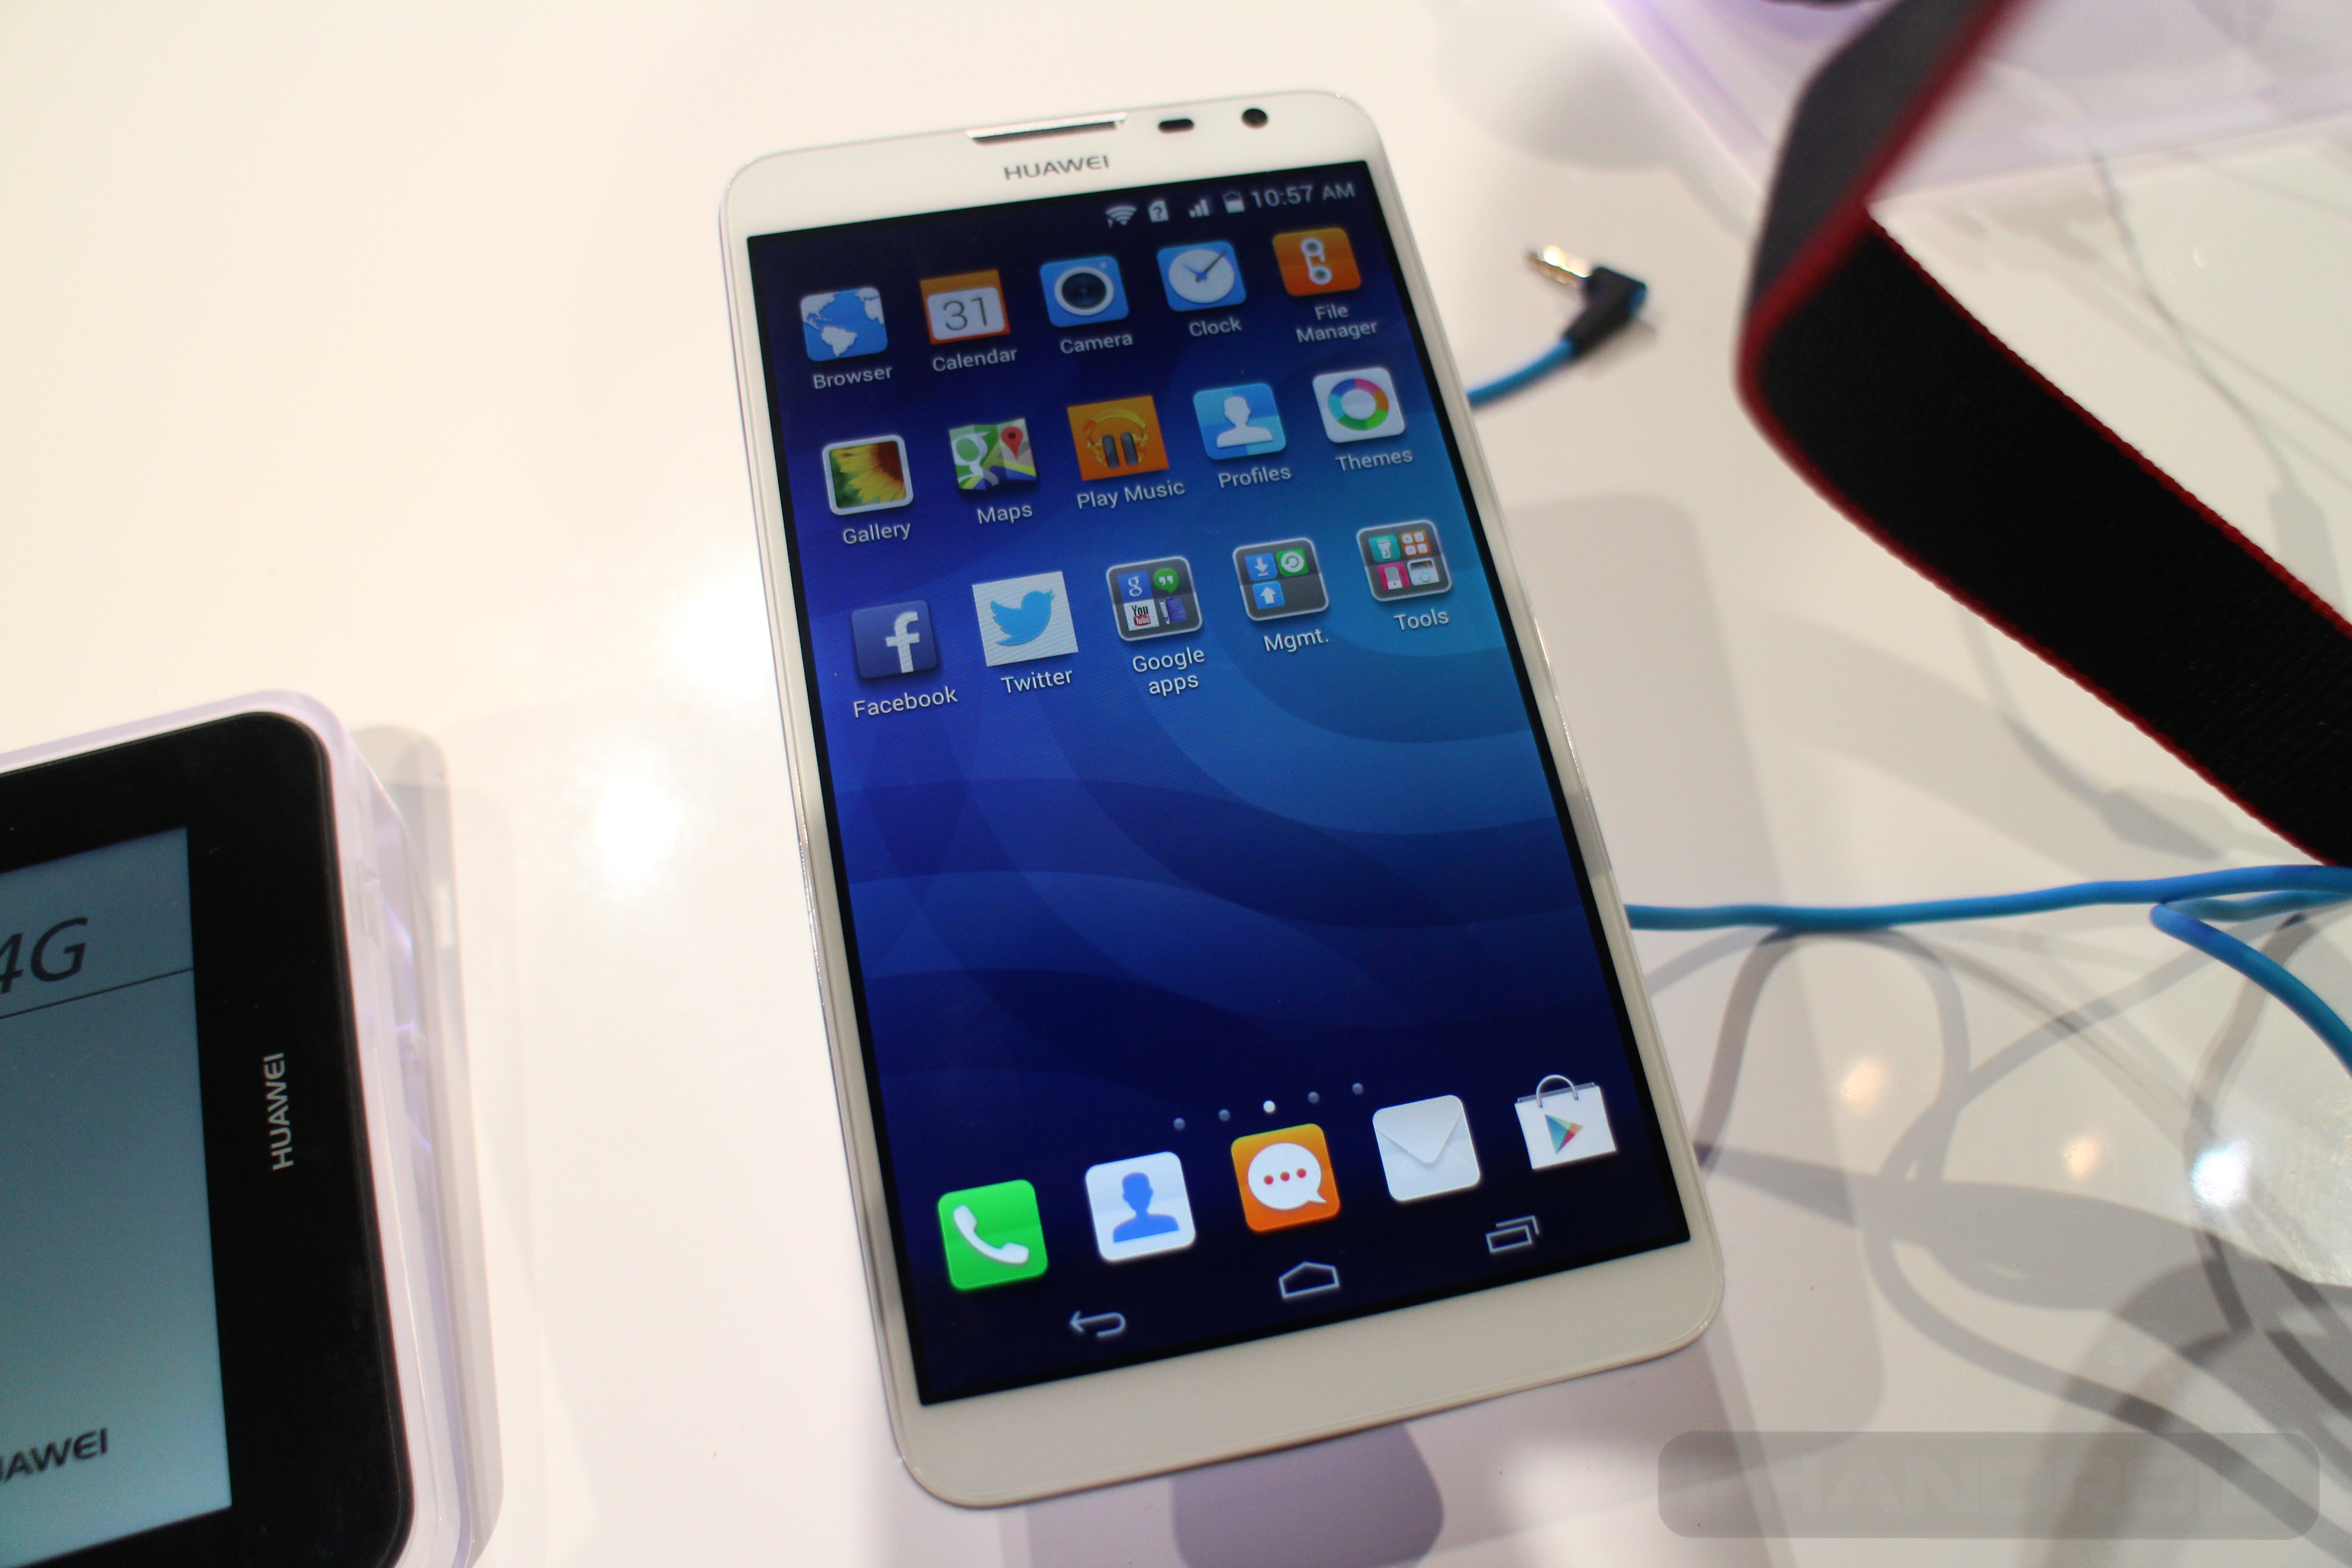 Hands-on: Huawei Ascend Mate 2 4G